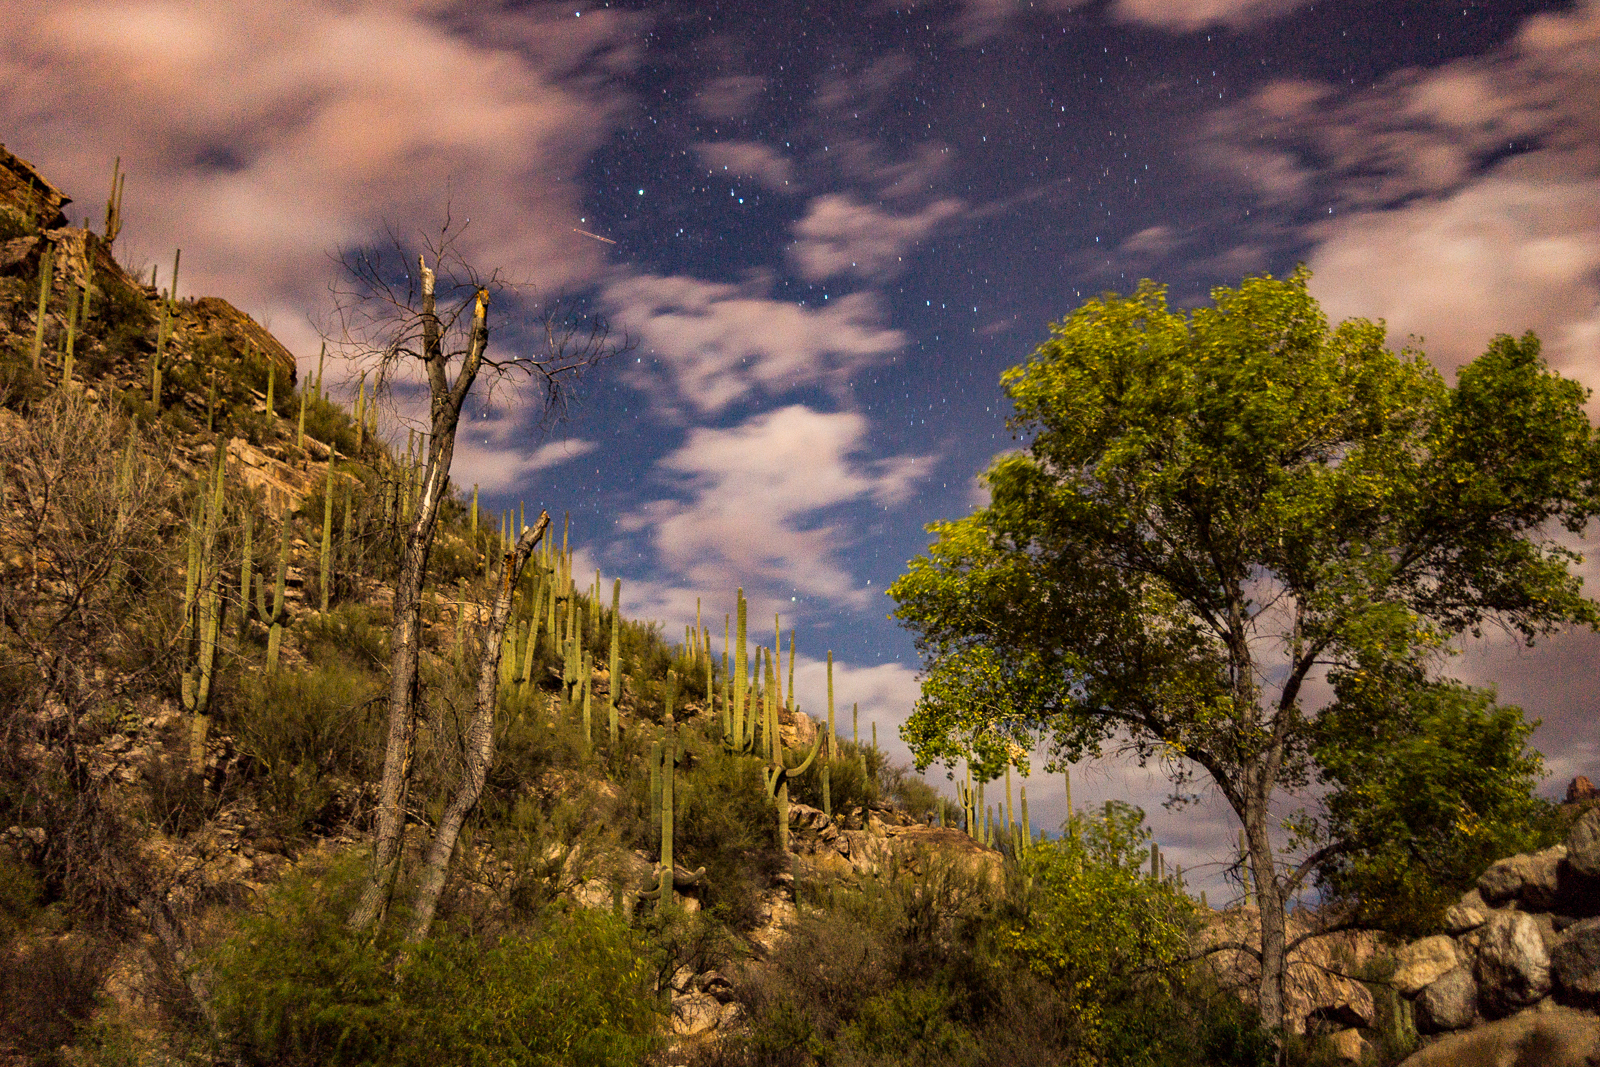 Looking up from Sabino Canyon - stars and clouds, Cottonwoods and Saguaro.